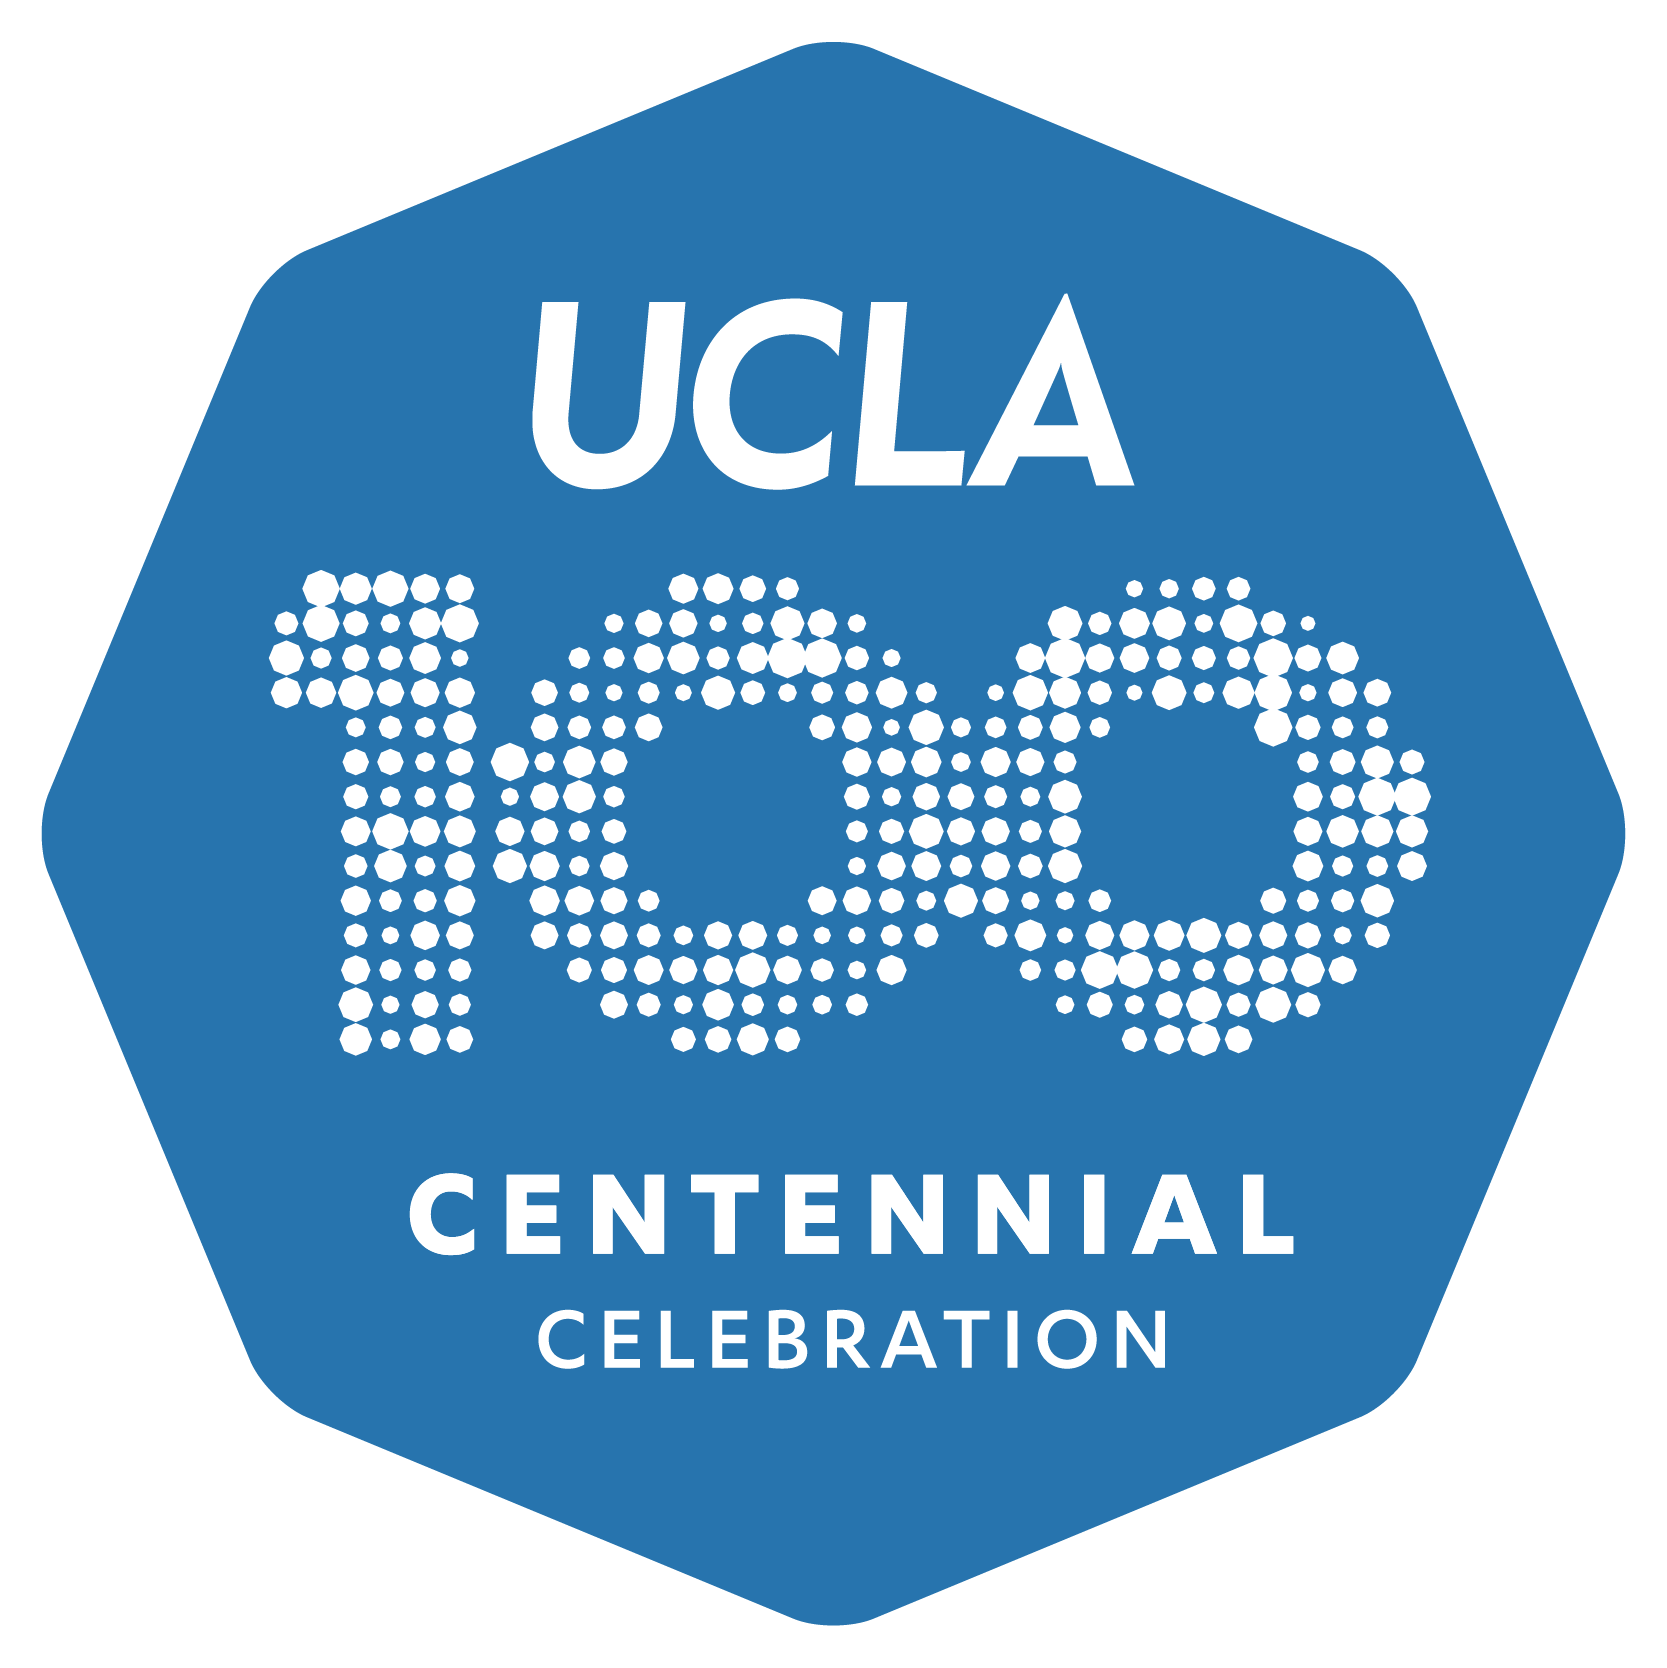 image for UCLA 100 Logo